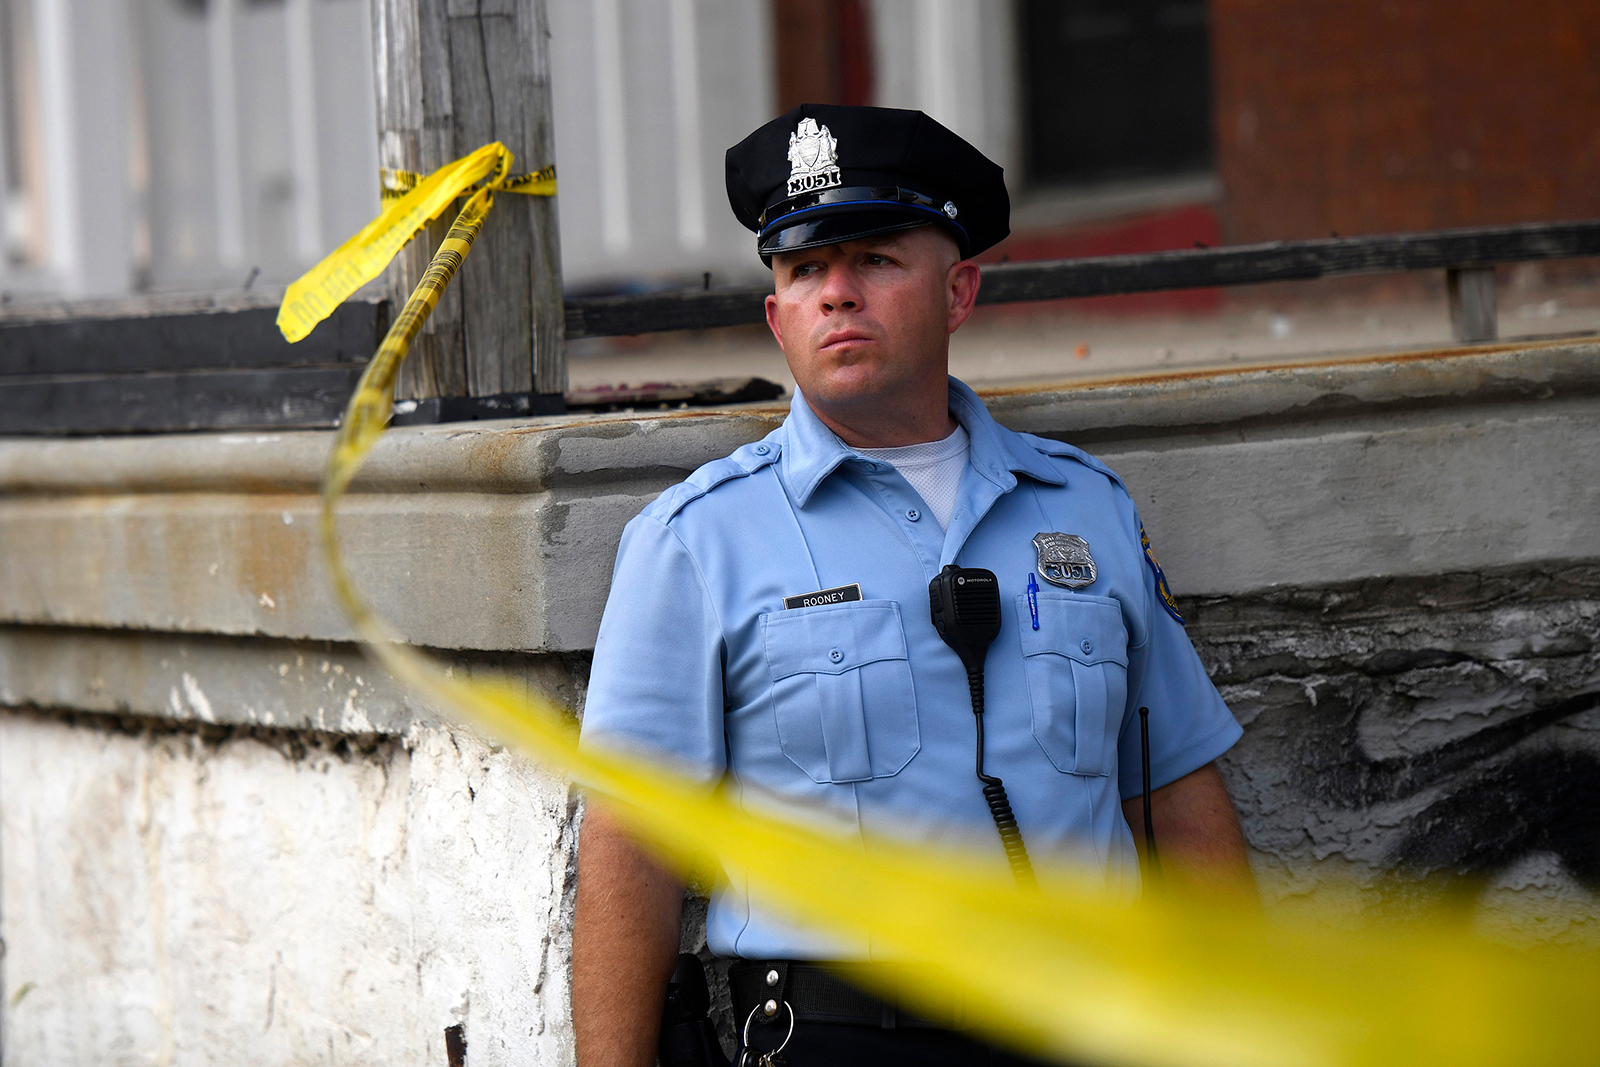 Philadelphia homicides second-highest in the country in 2020, police say